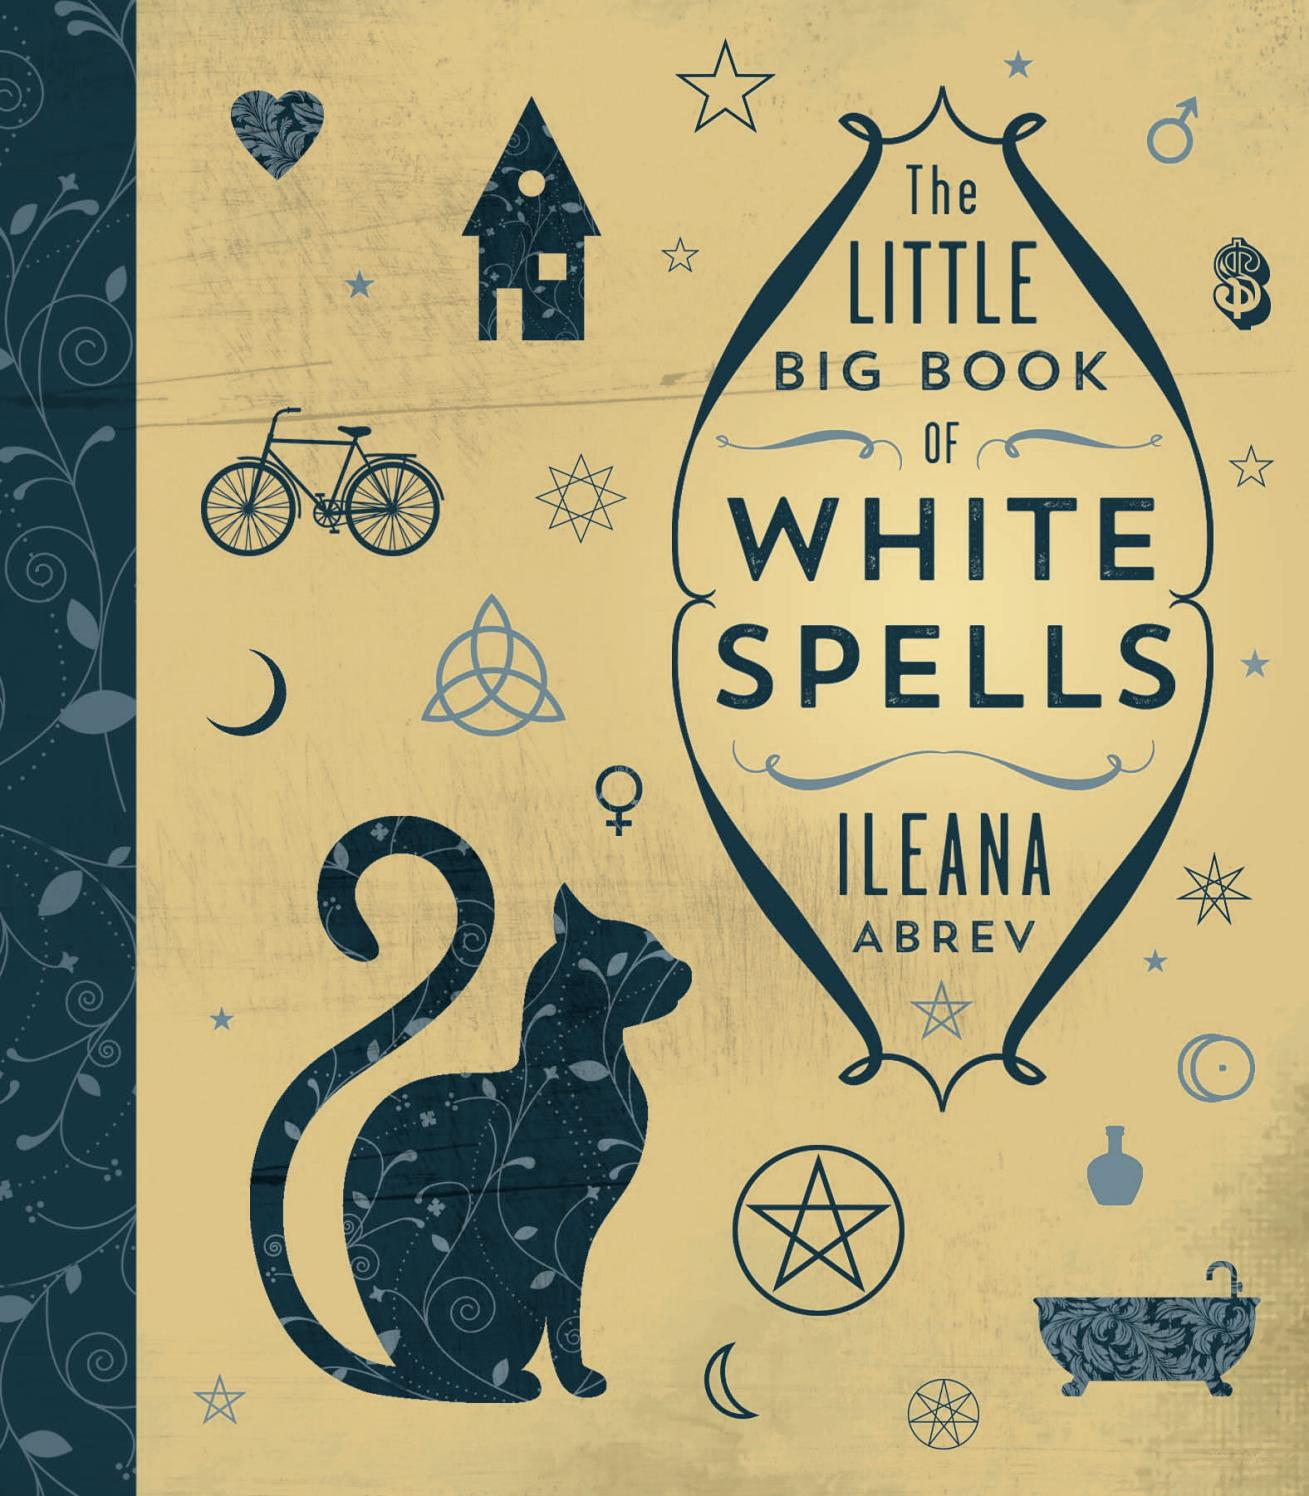 The Little Big Book of White Spells, by Ileana Abrev by